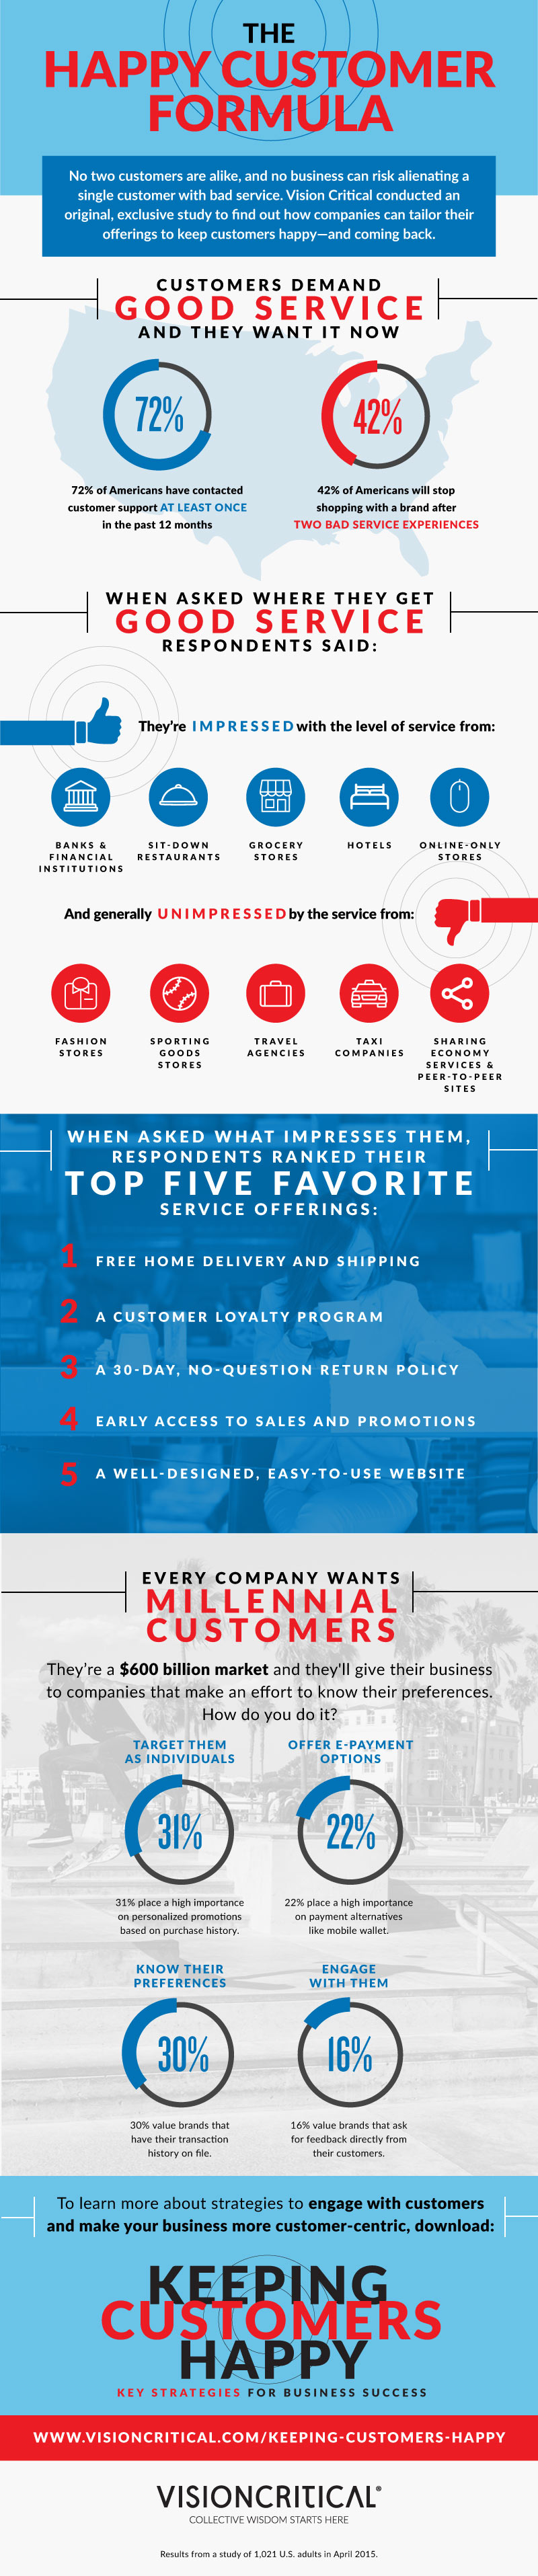 How to increase customer satisfaction - infographic